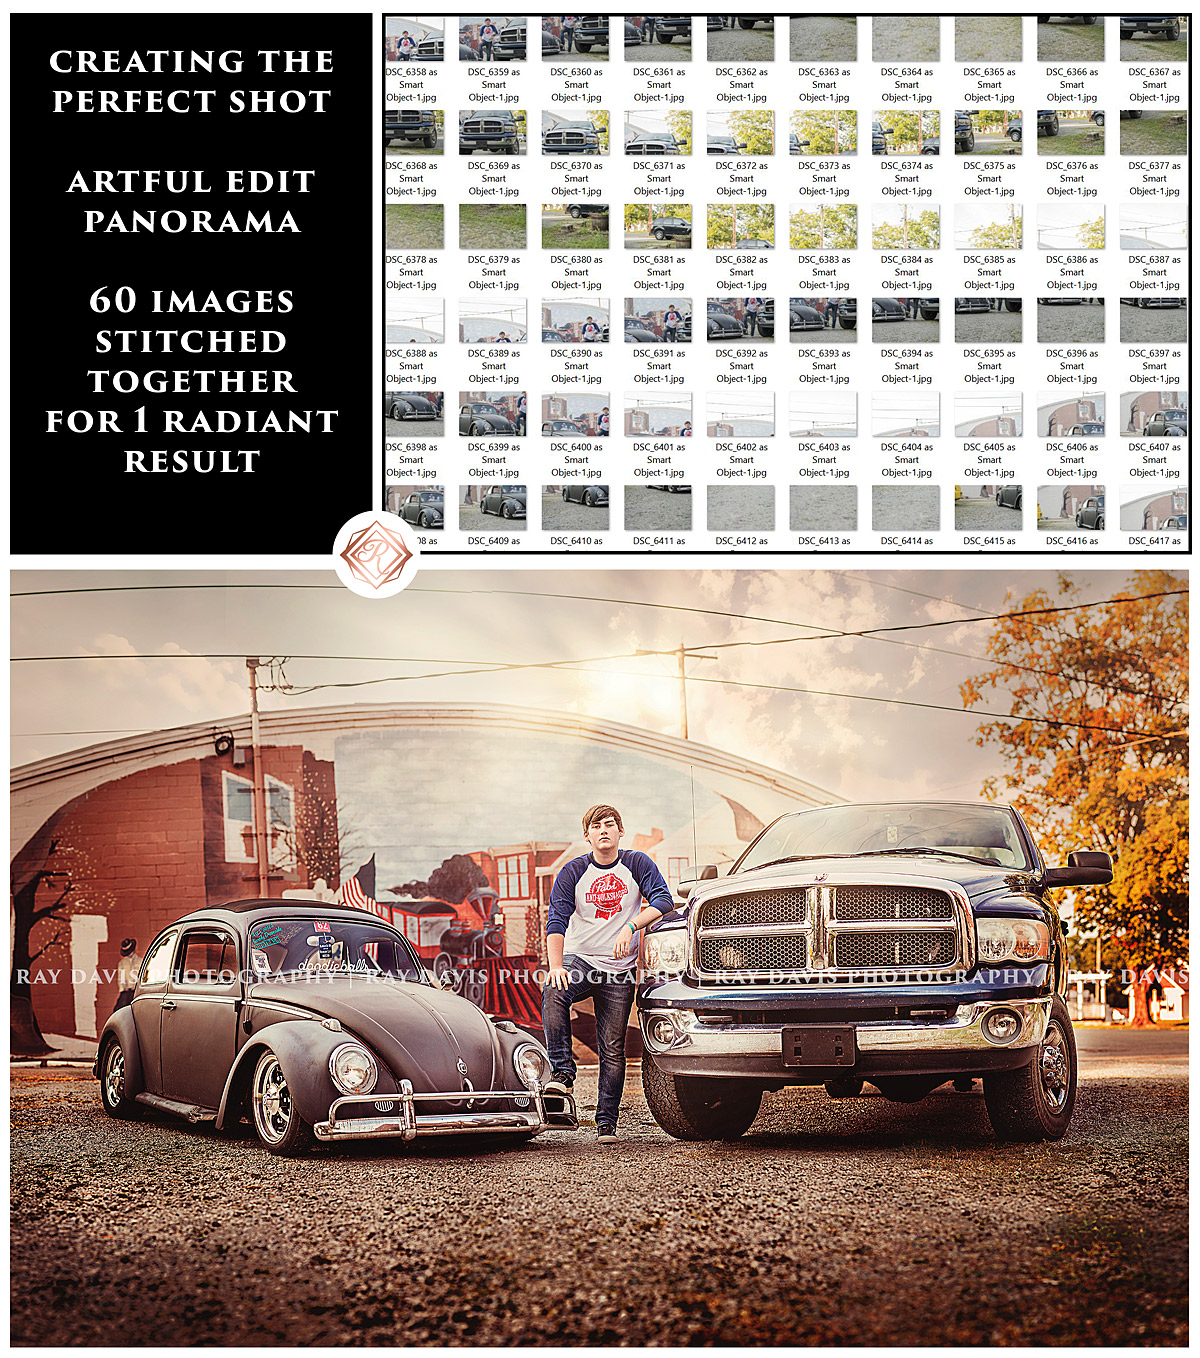 Guys Senior Picture with cars Vw Beetle and Truck Panorama